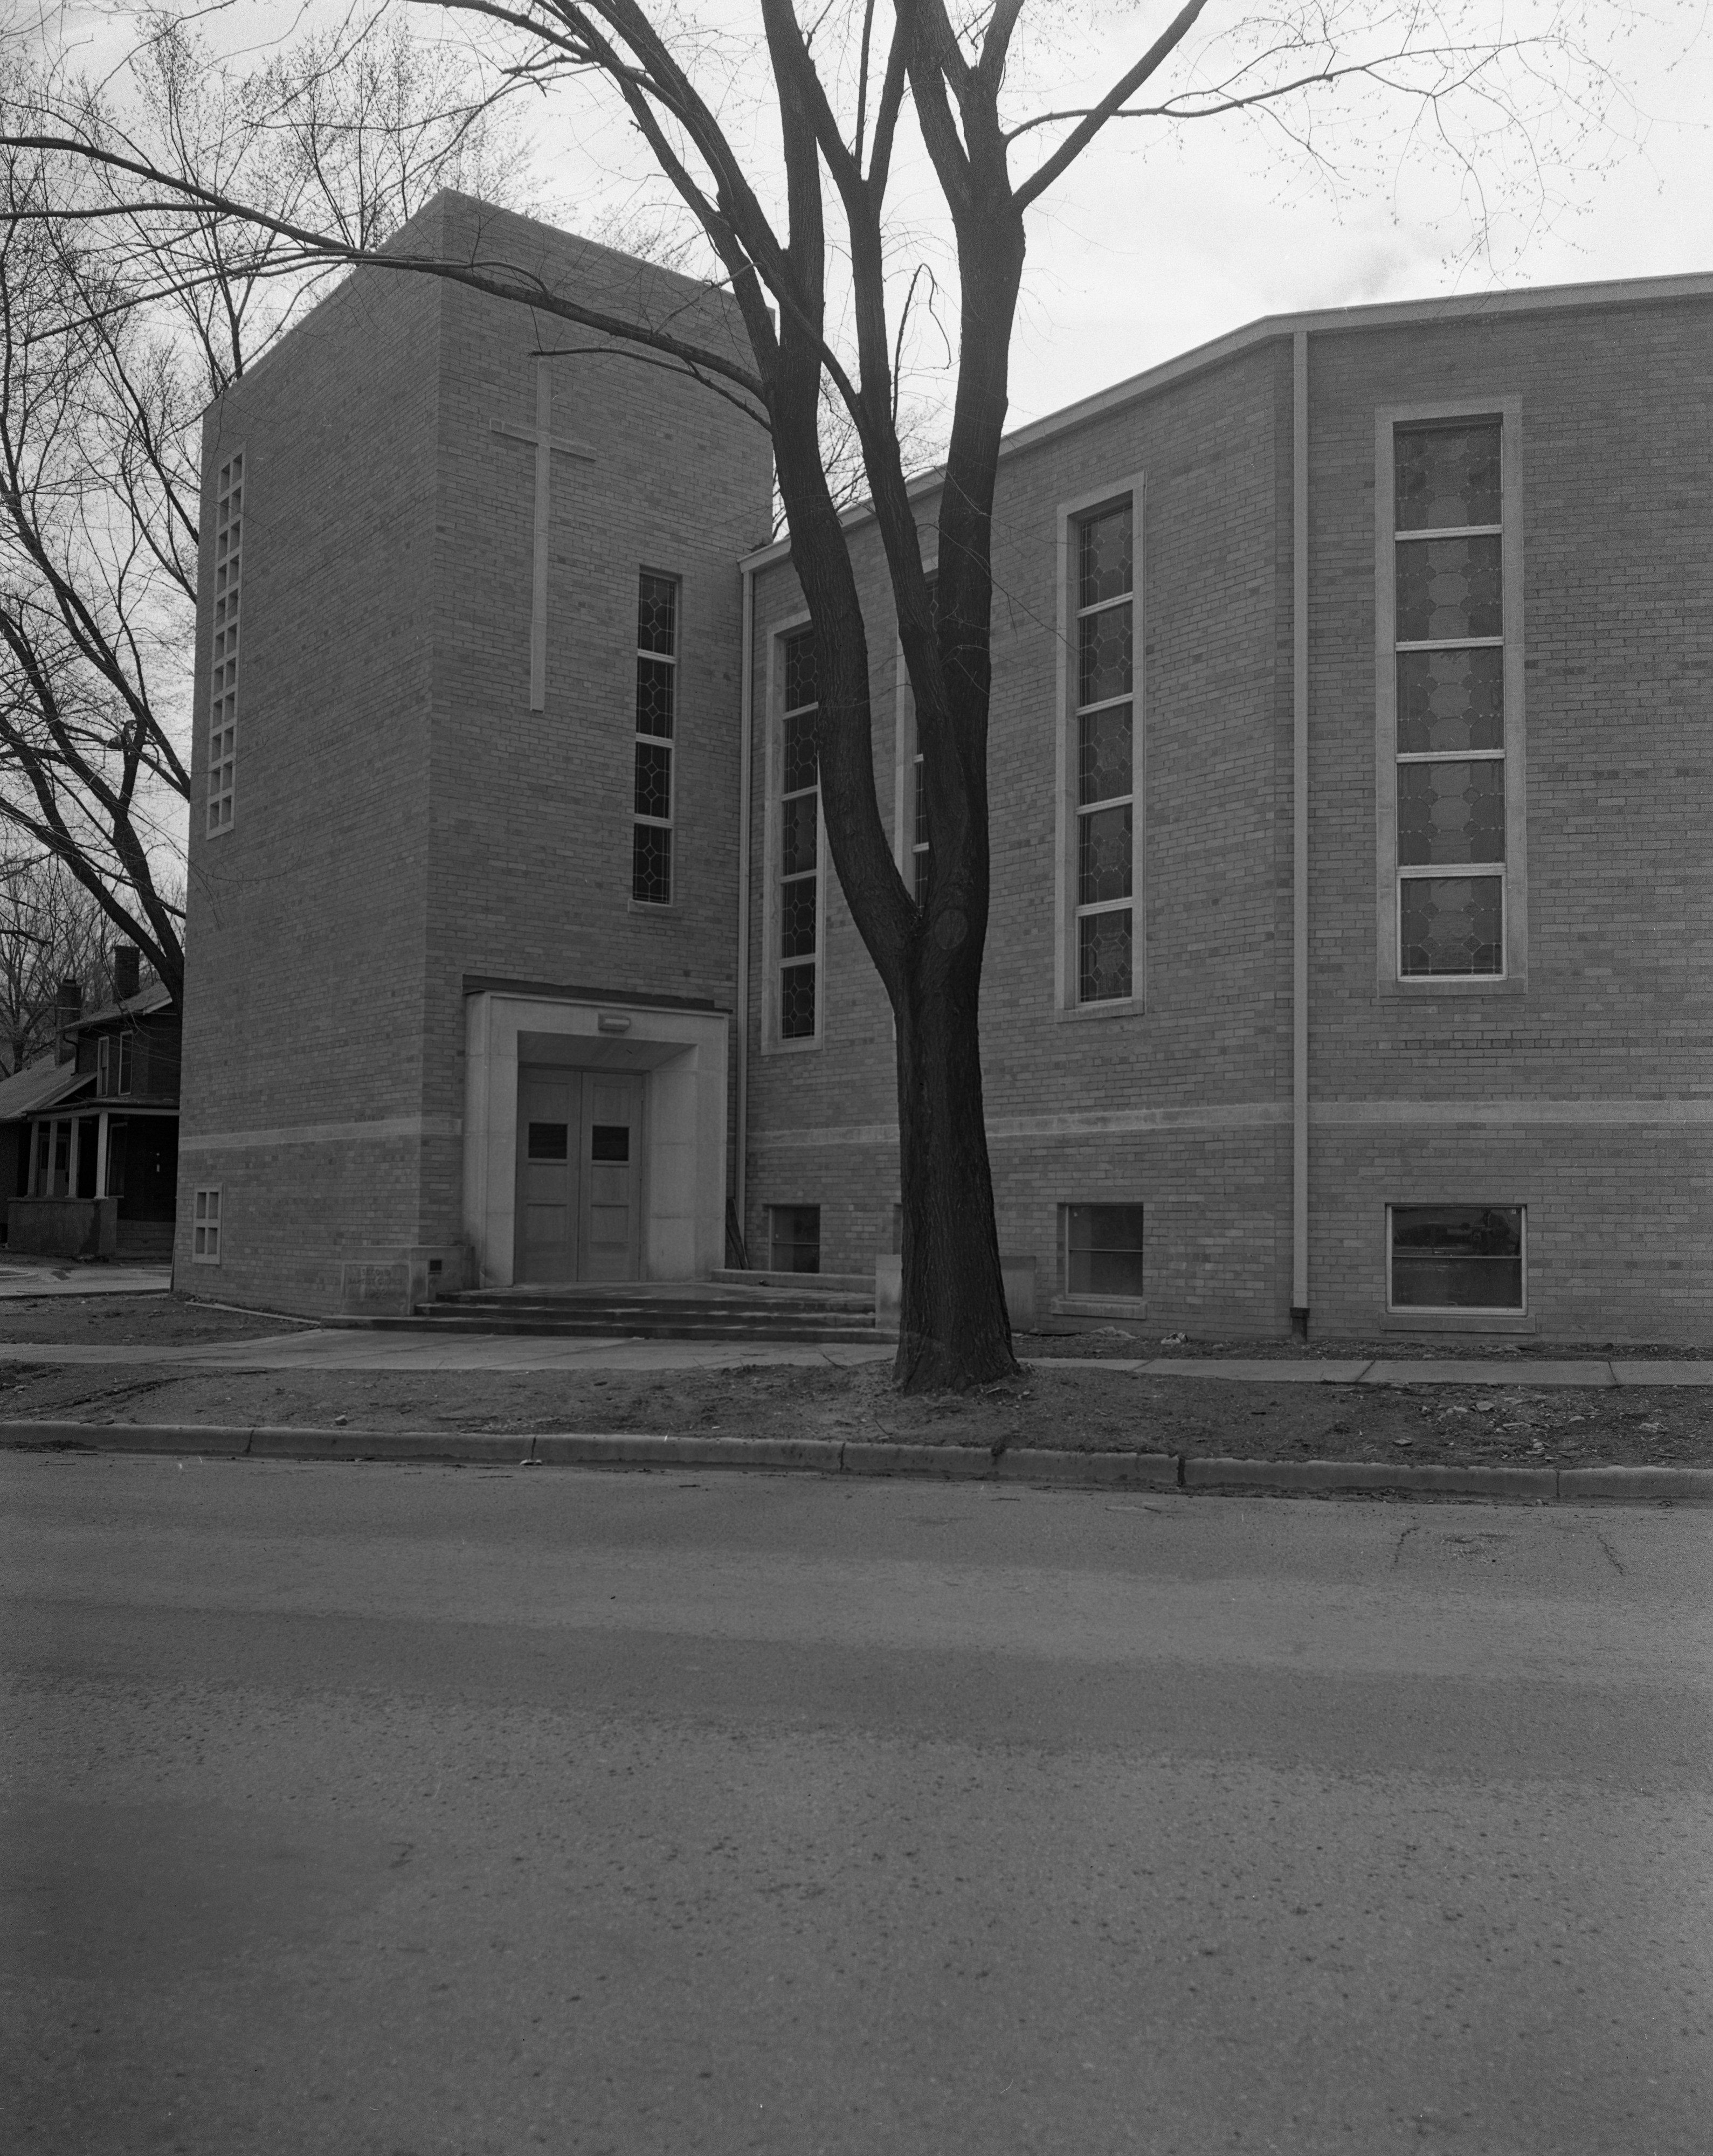 New Second Baptist Church Features Modern Design, May 1953 image